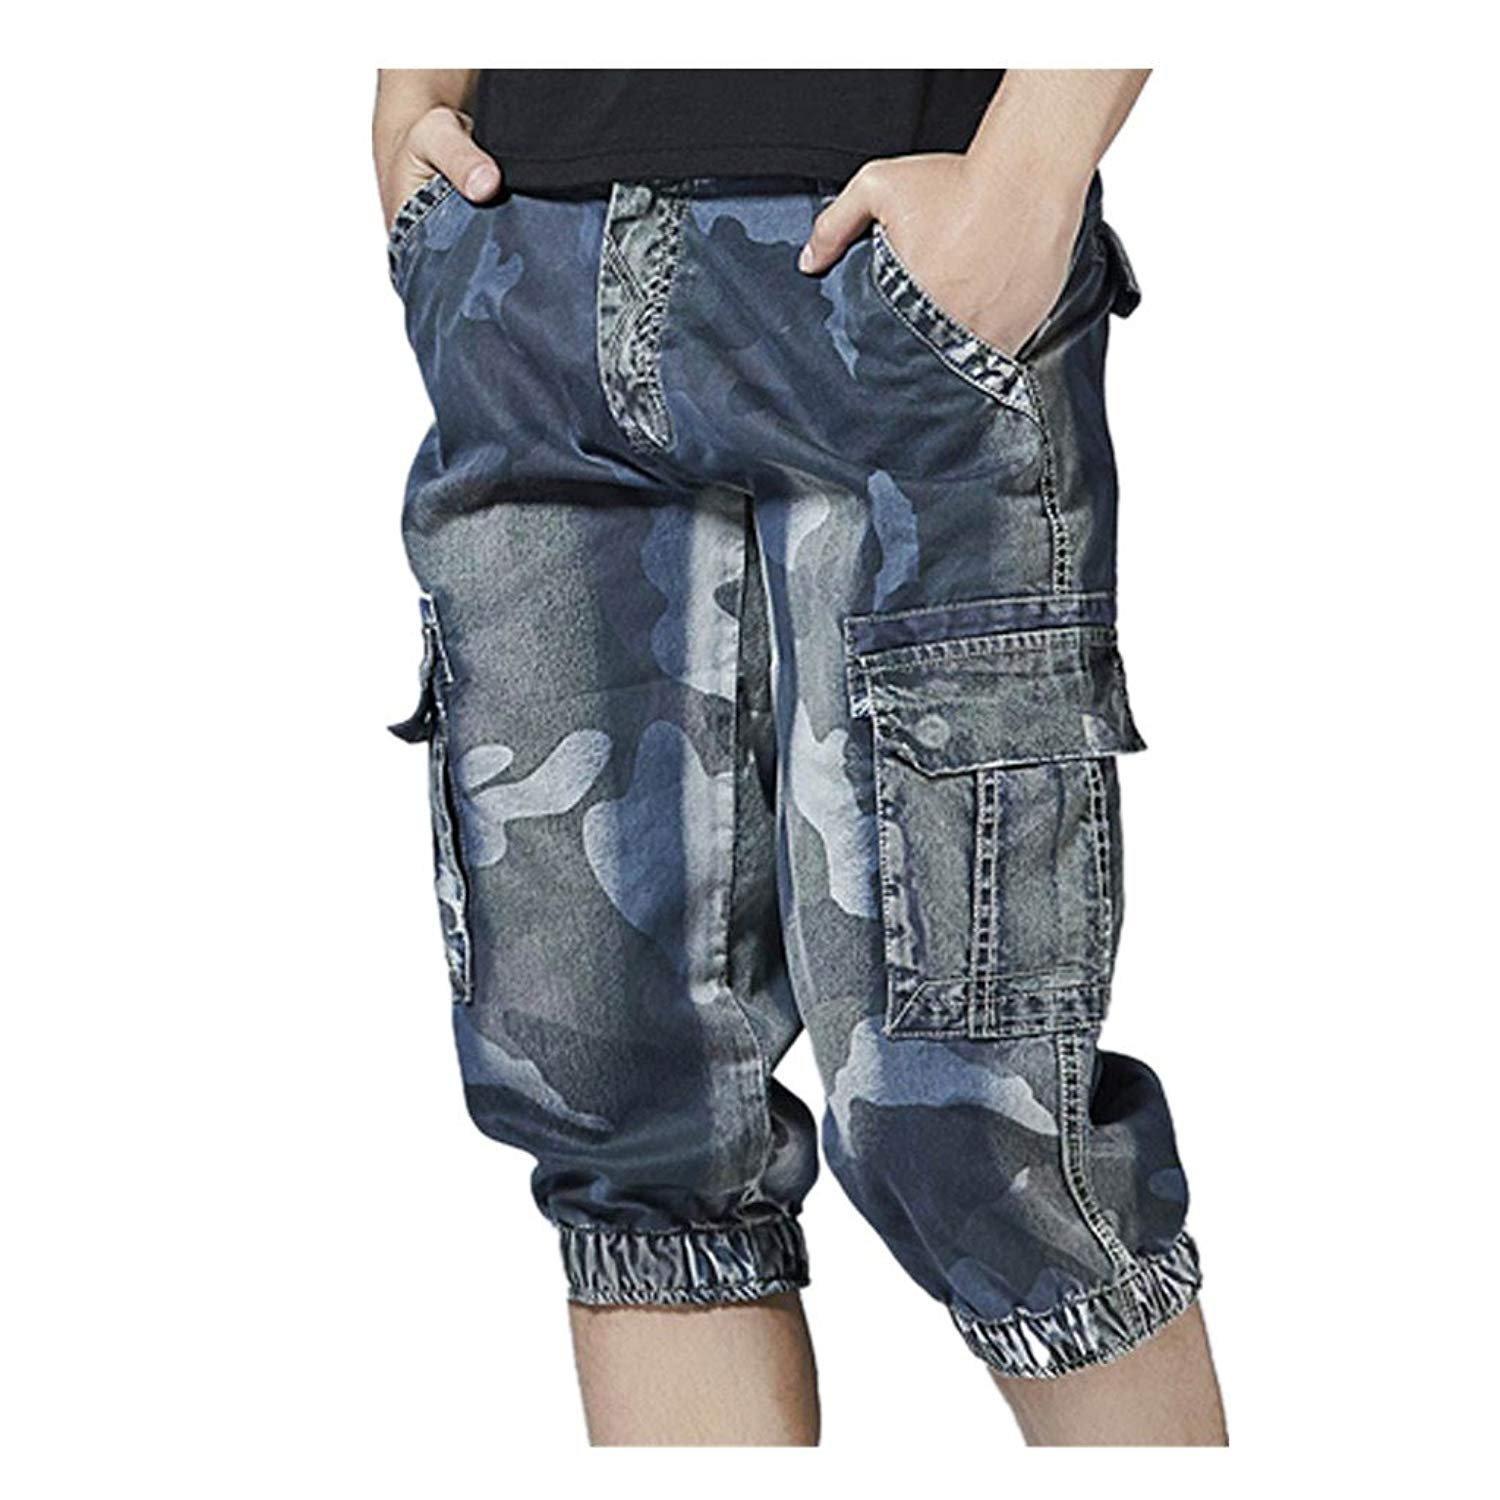 FarJing Mens Shorts Clearance,Mens Fashion Casual Pocket Beach Shorts Work Casual Short Pants